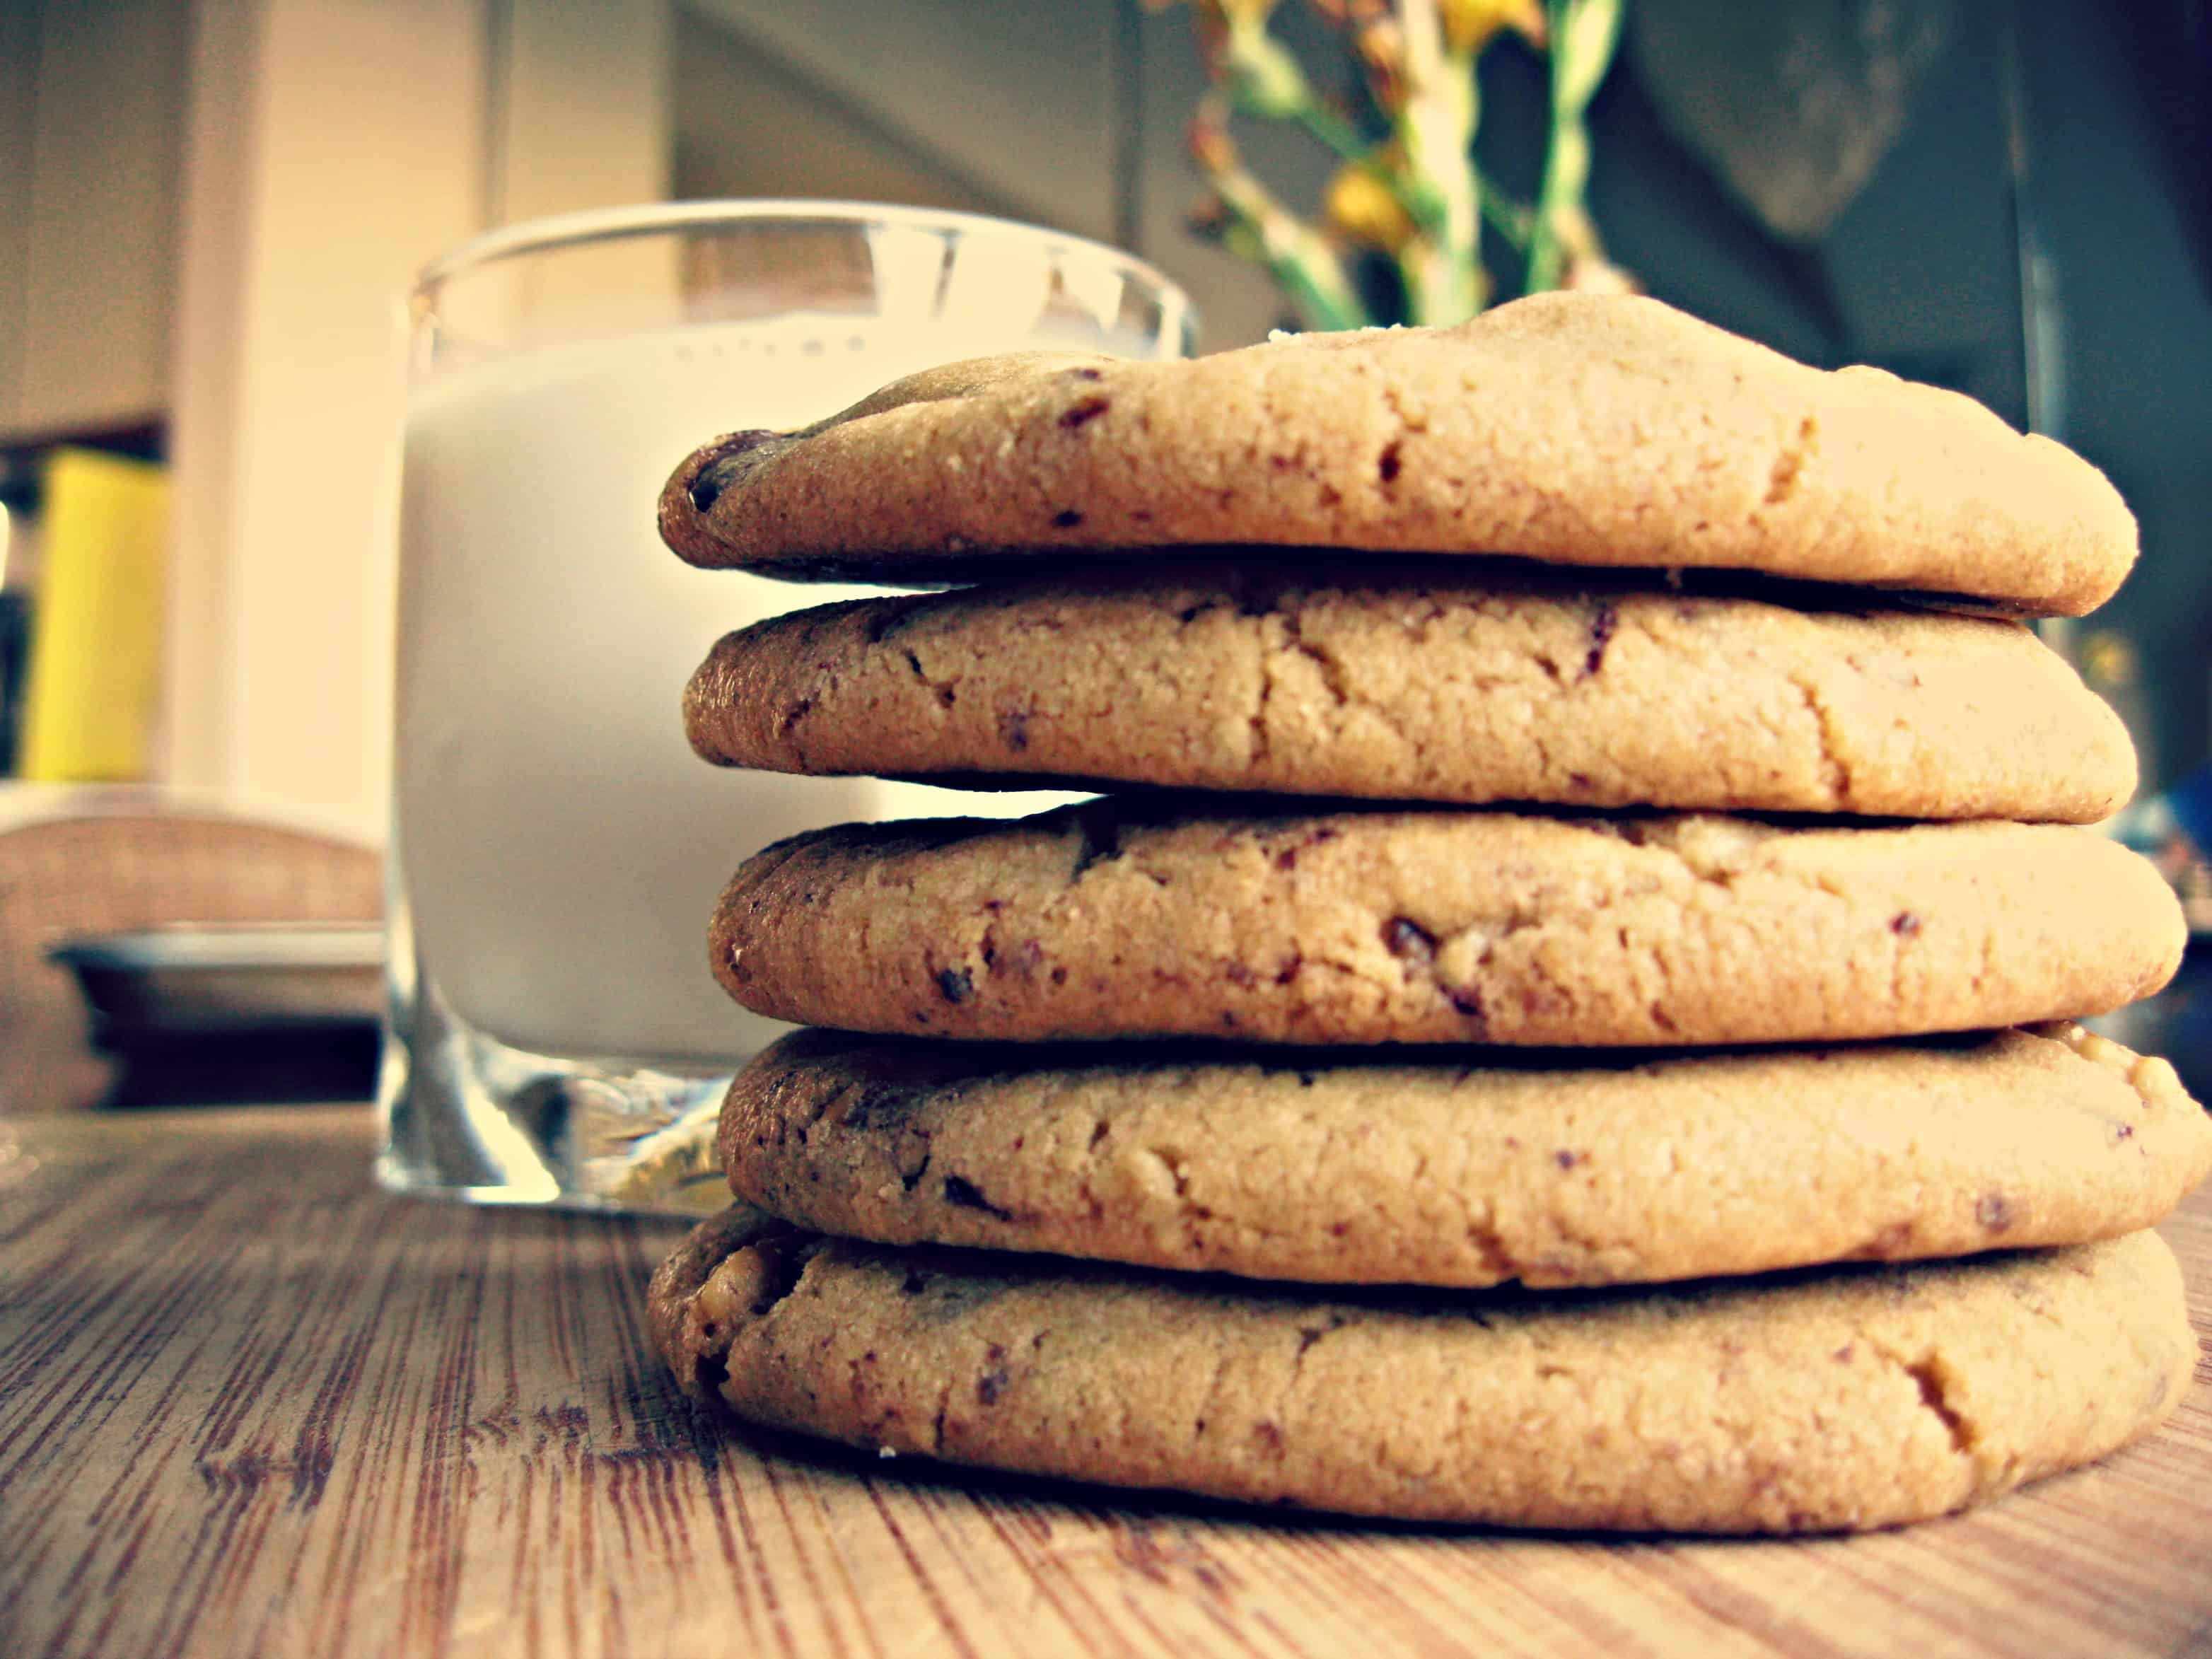 A stack of chocolate chip cookies next to a glass of milk.